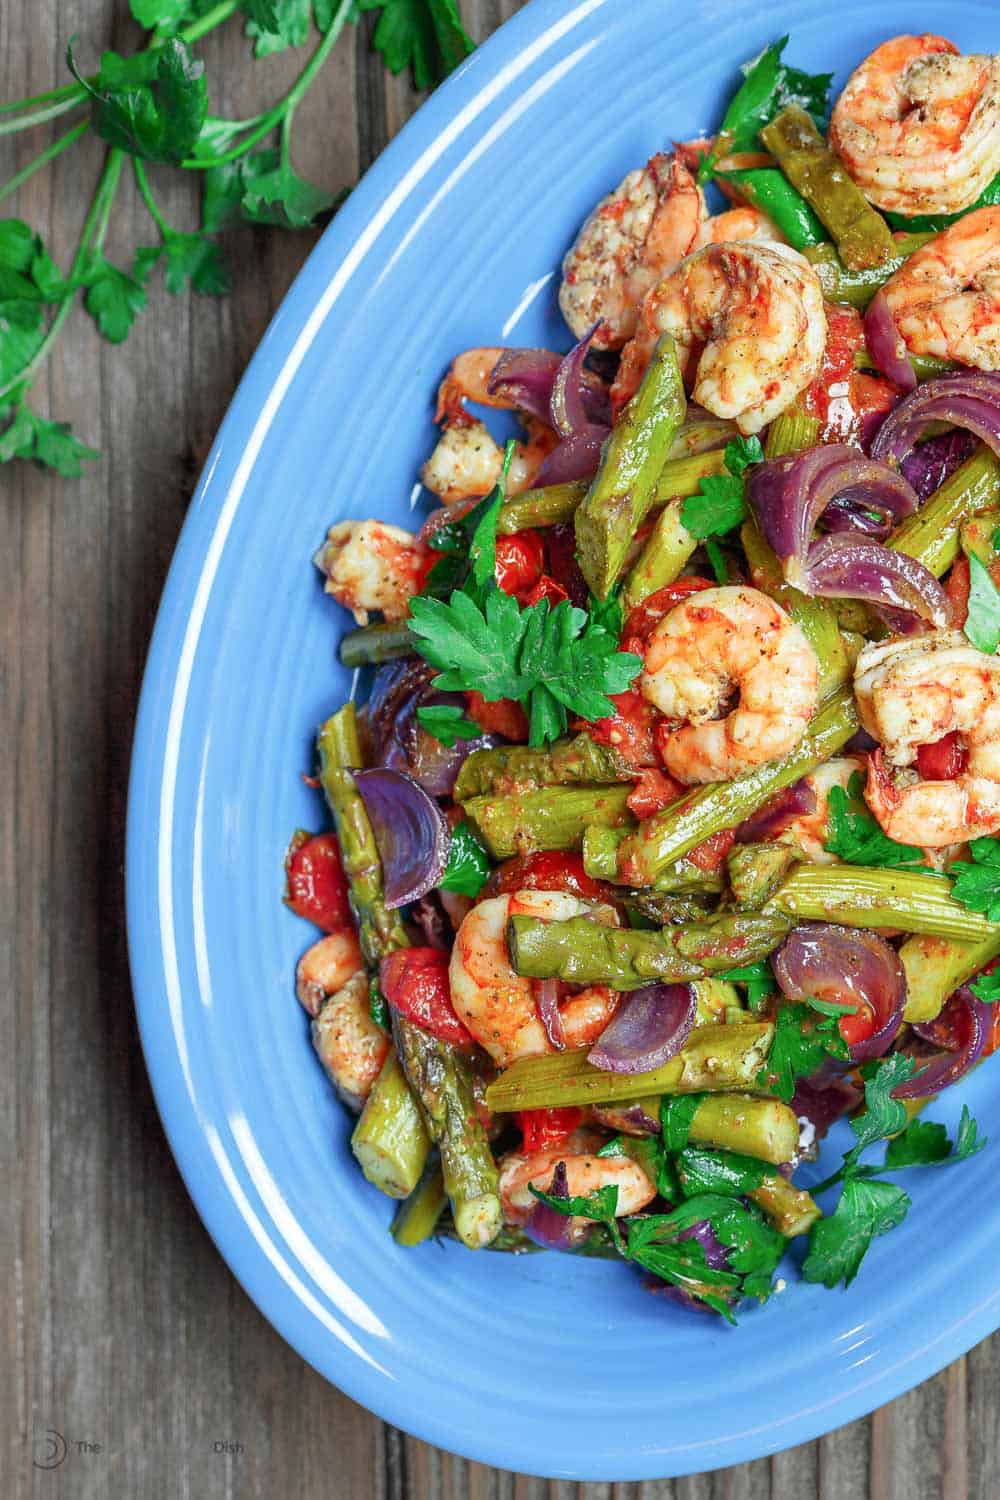 Baked shrimp with Mediterranean flavors and healthy veggies served on a dish